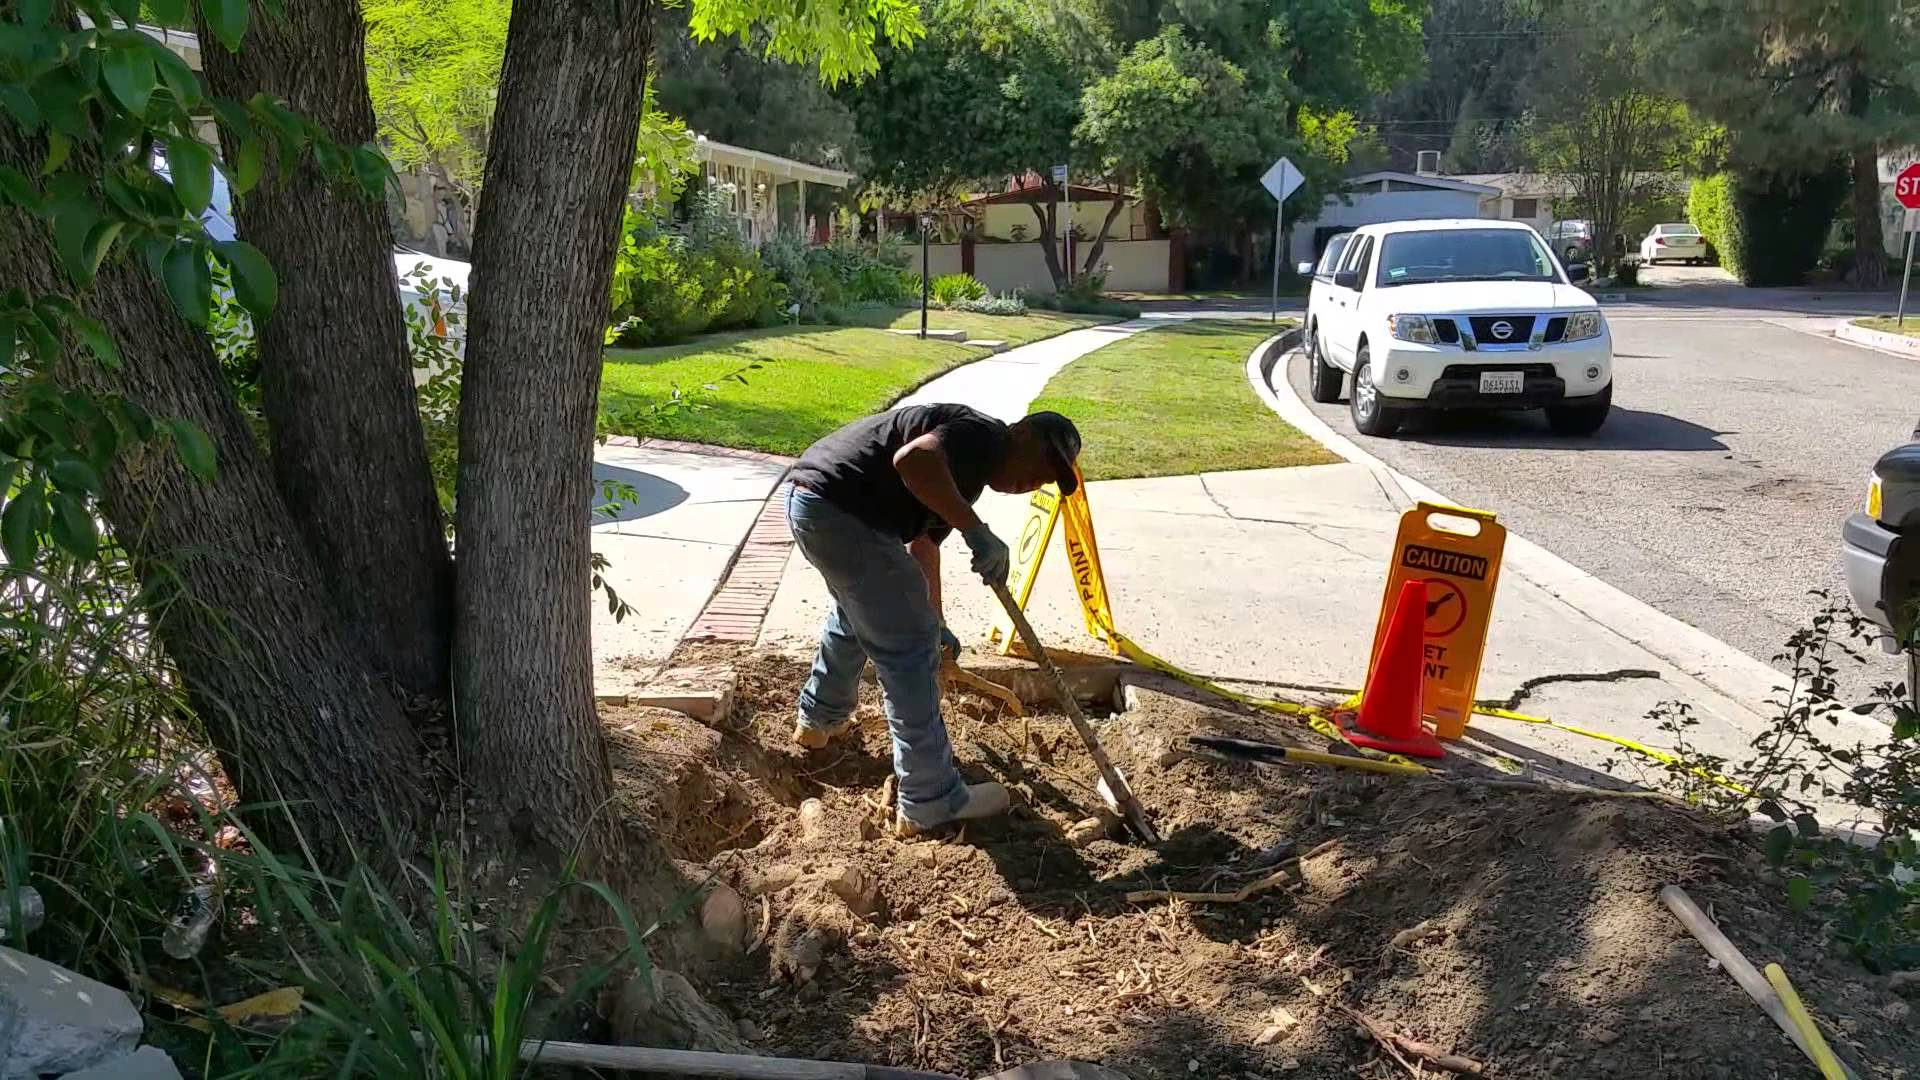 Alluring Sewer Pipe Rock Salt How To Kill Tree Roots Cutting Tree Roots El Sobrante Tree Service Arborist How To Kill Tree Roots houzz-02 How To Kill Tree Roots